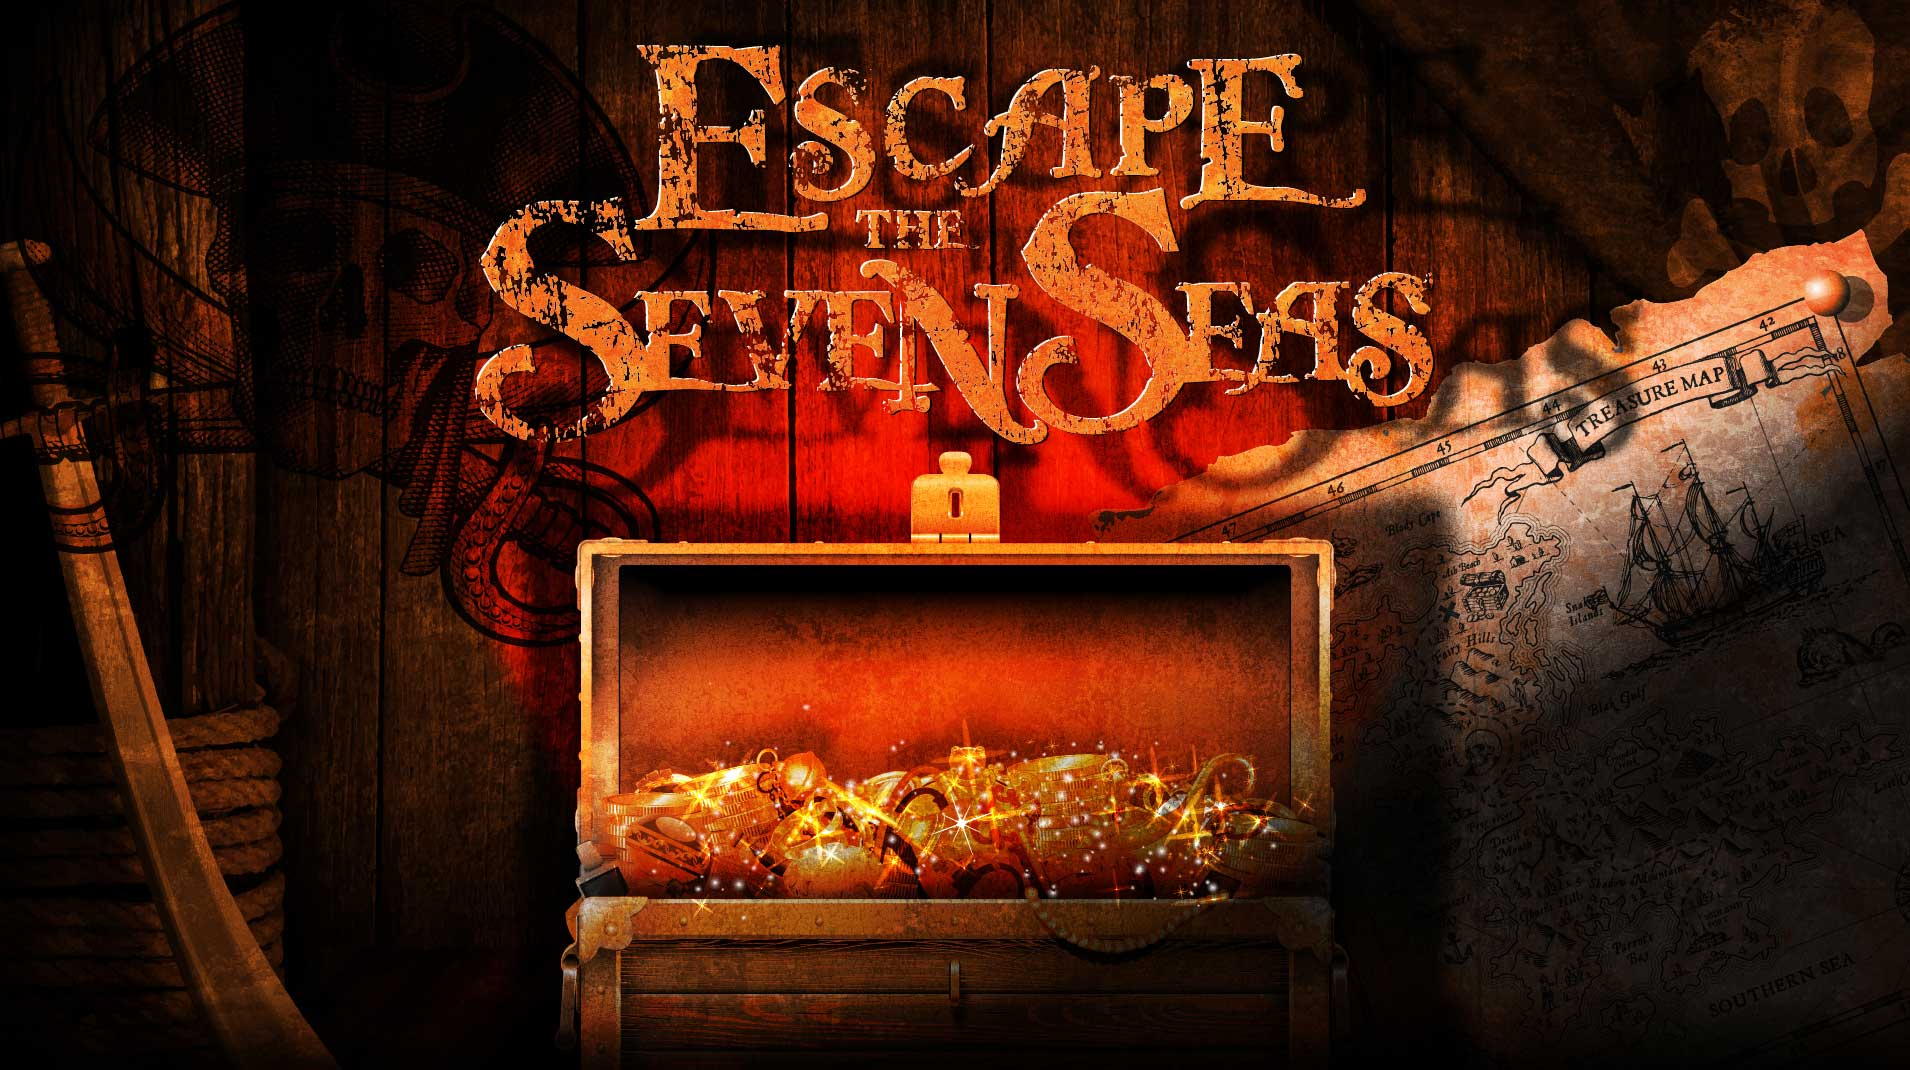 escape the seven seas - SHADWELL - EAST LONDONYou and your crew have been locked away in the brig. Does your team have what it takes to escape your cell, break into the Captains chamber and steal the treasure all for yourself? Glory and riches await